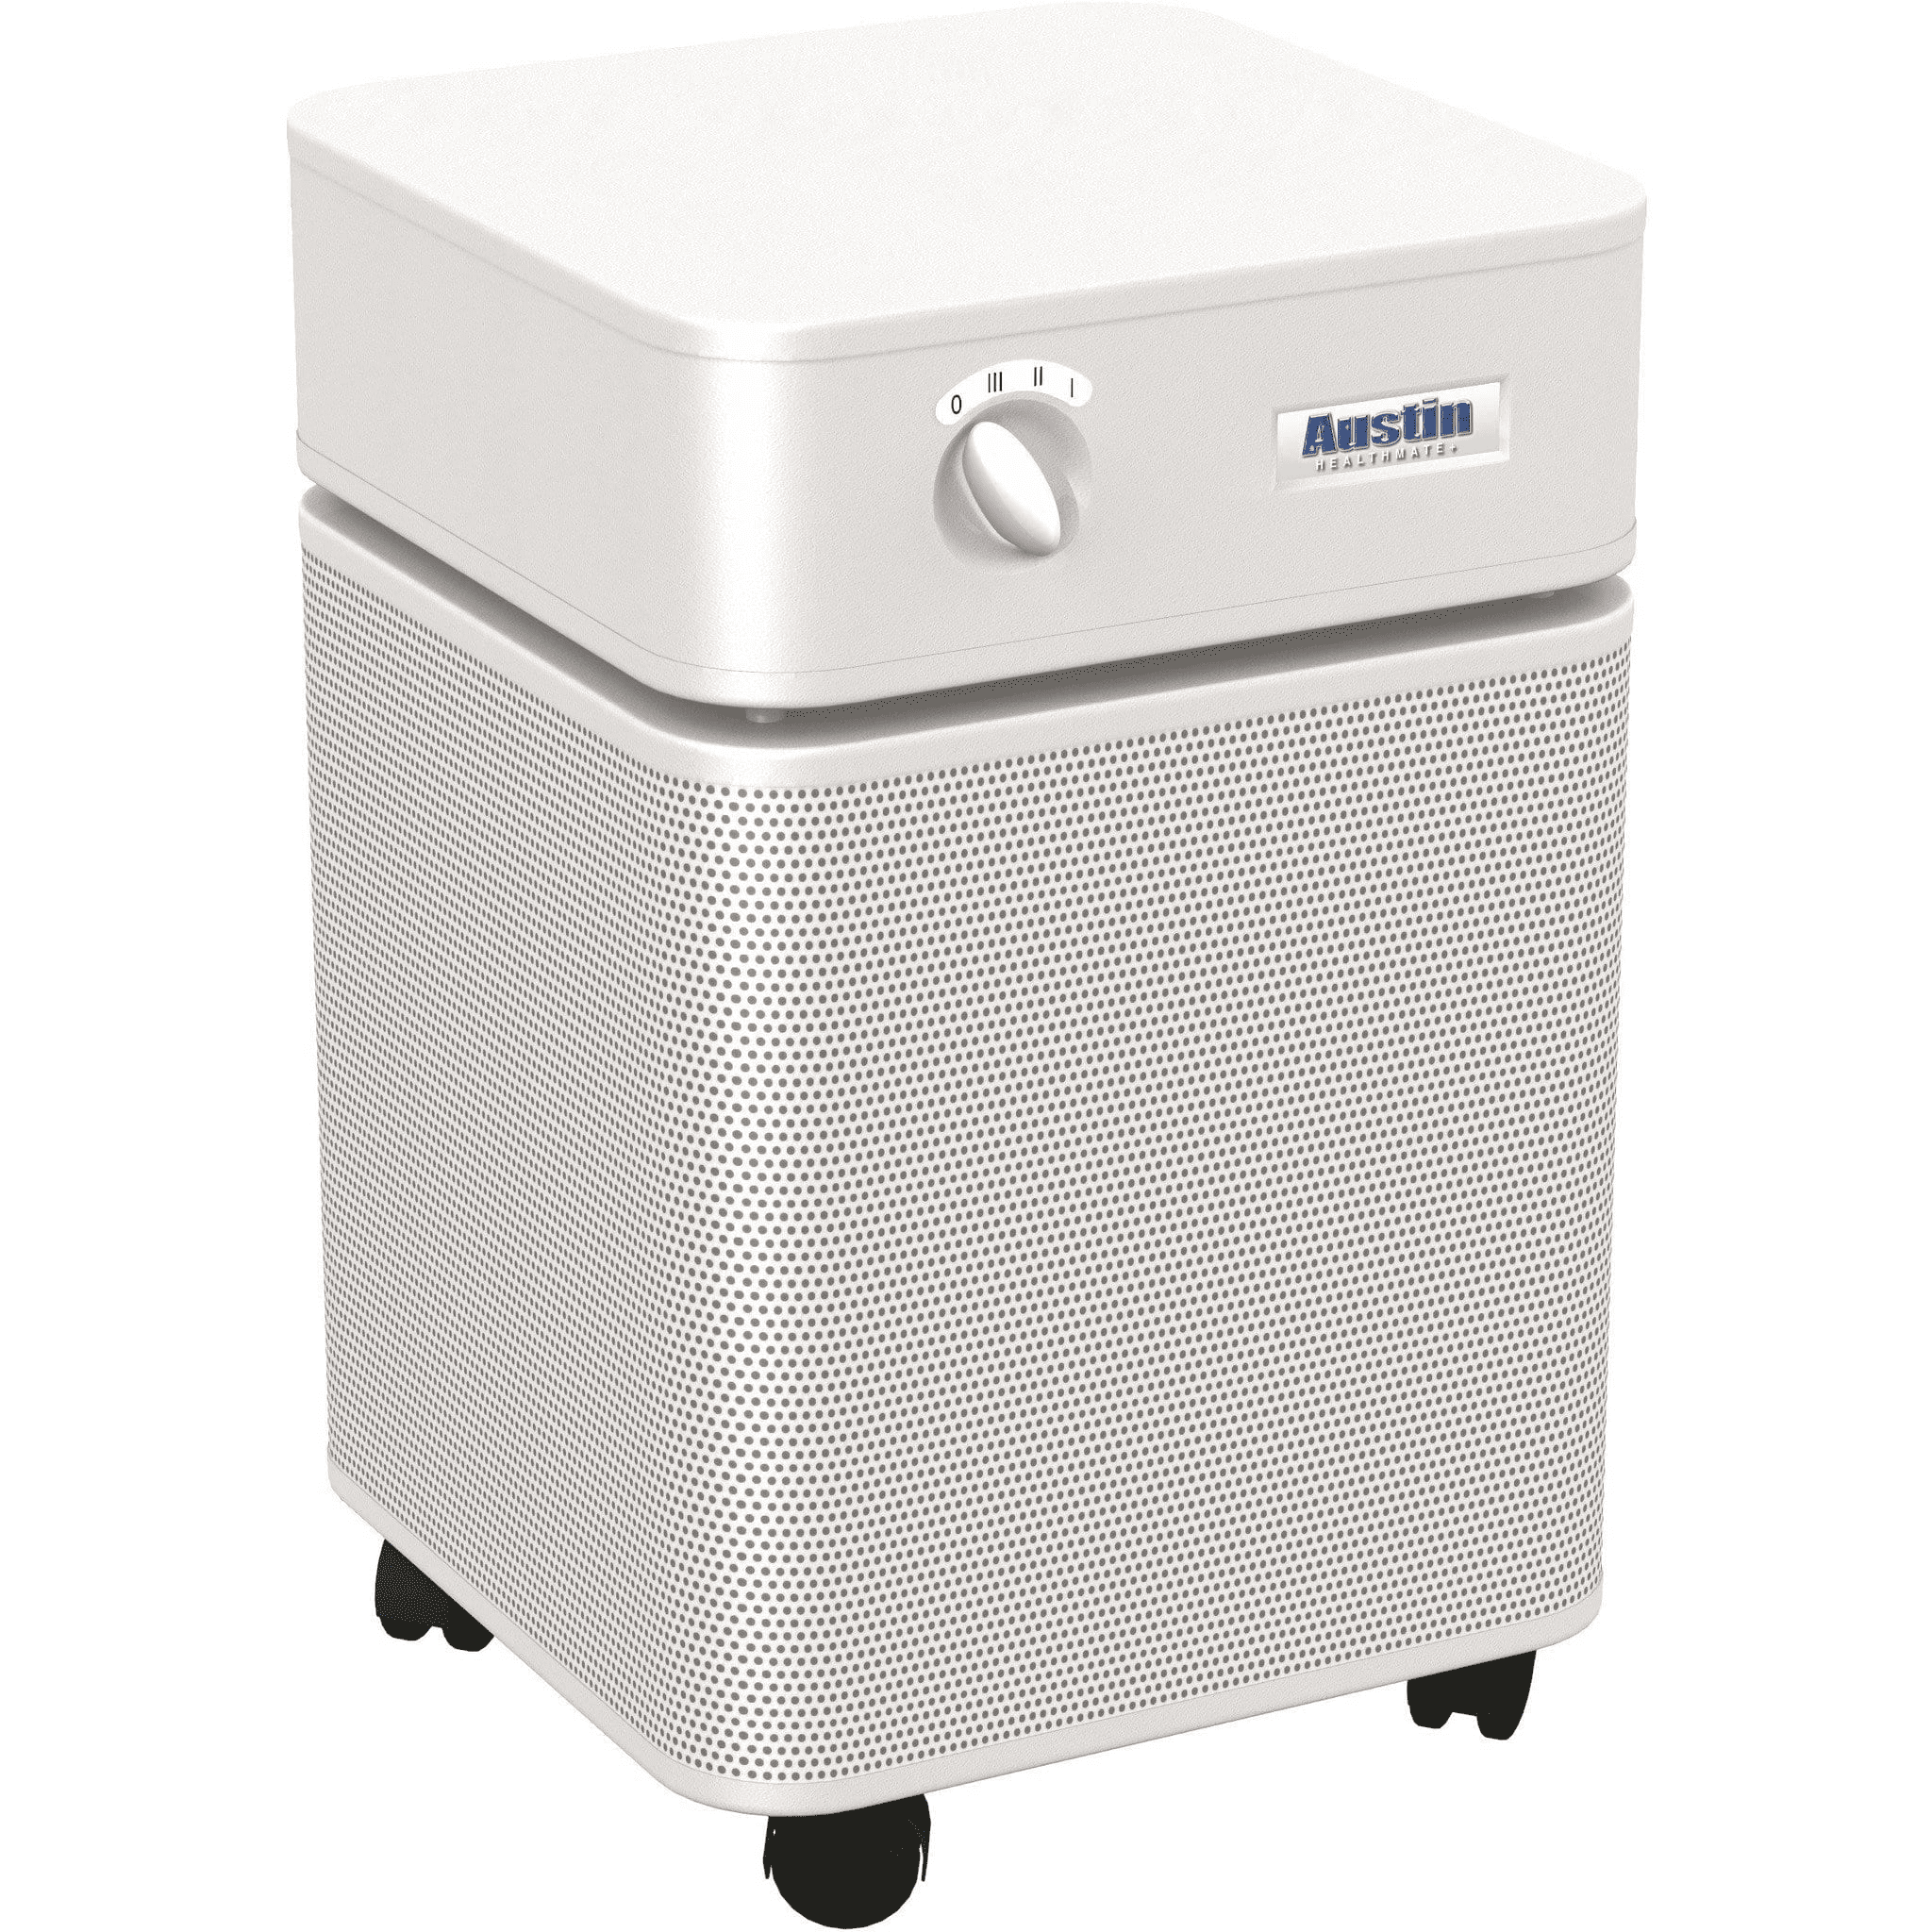 Austin Air HealthMate Plus Air Purifier